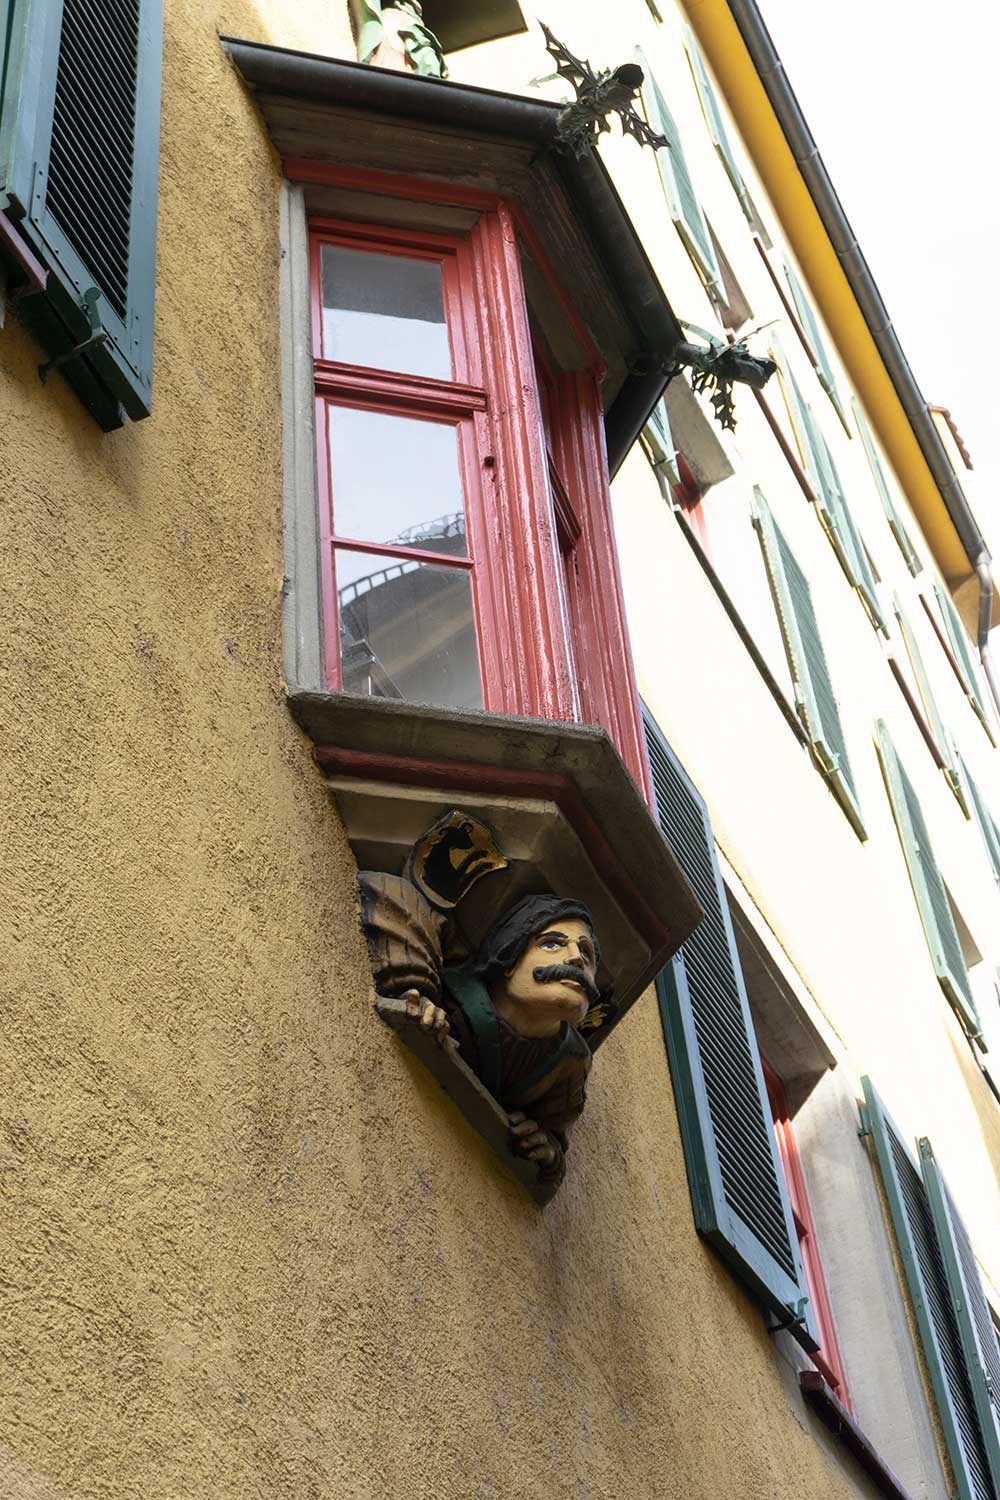 A carved face looks out at the streets from below a window in Konstanz, Germany.